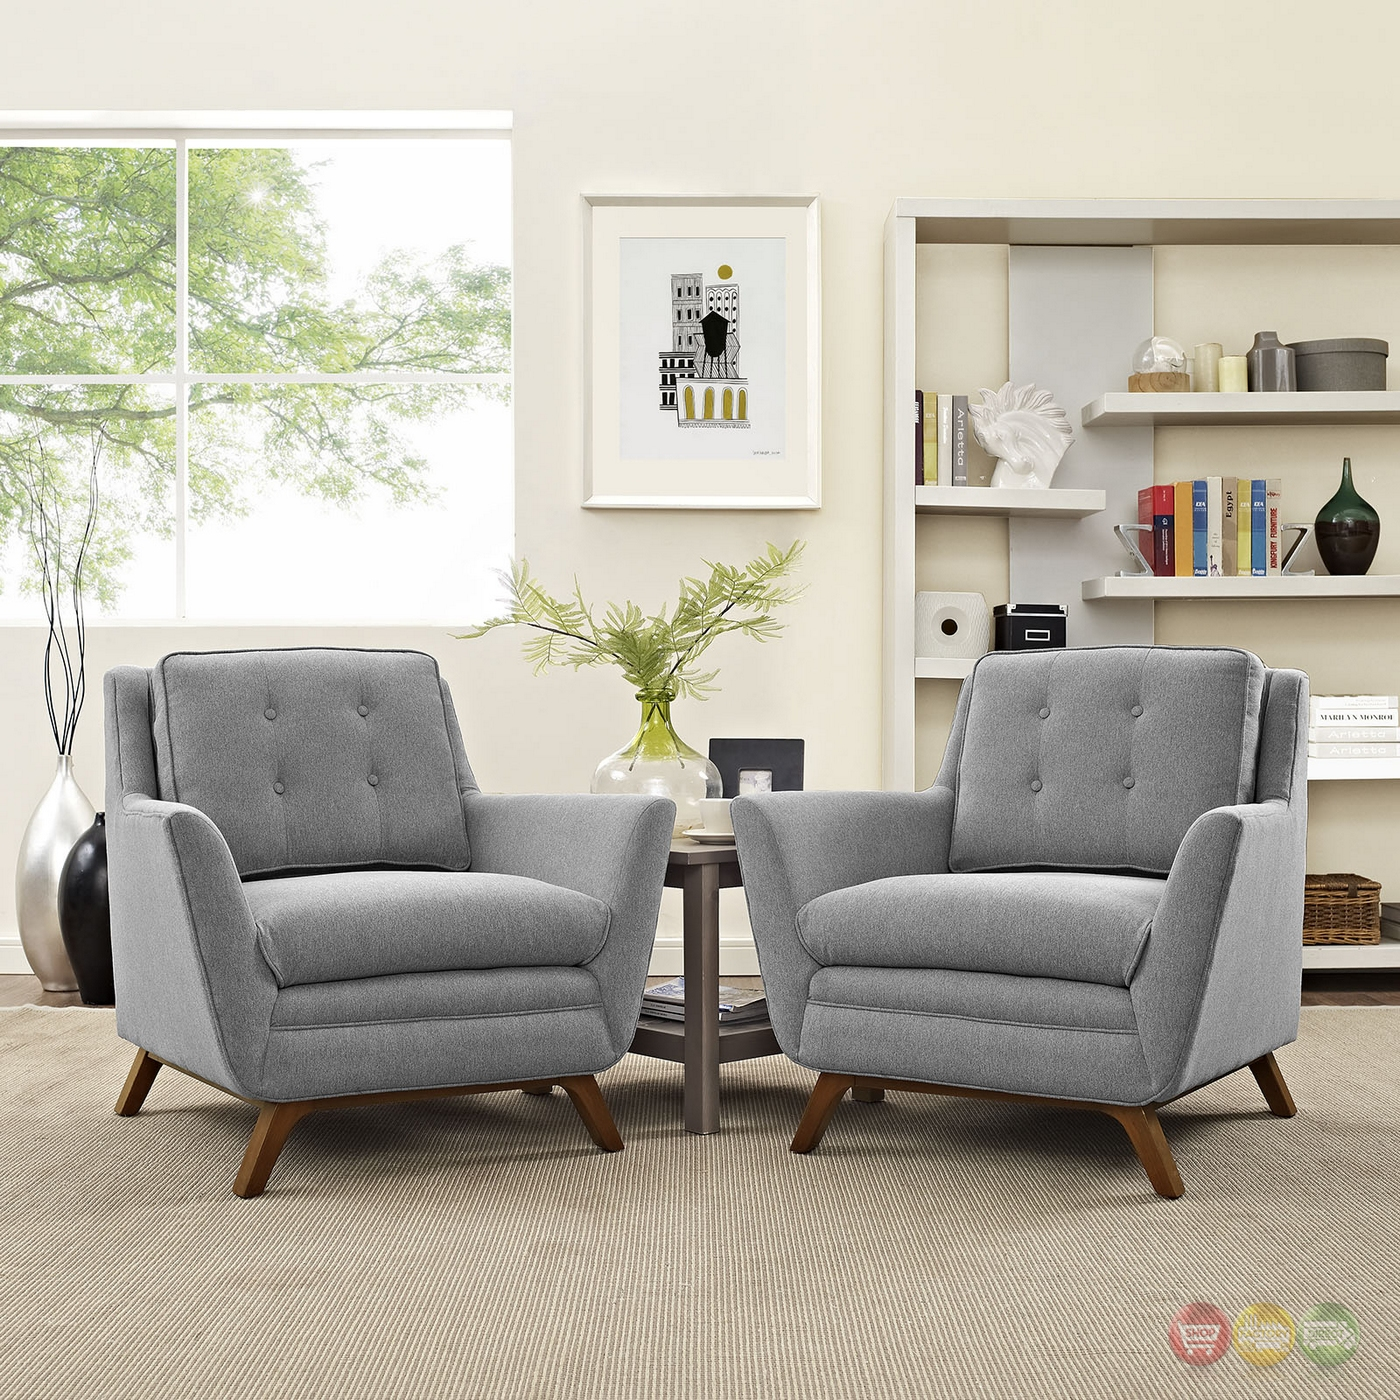 mid century modern beguile 2pc fabric living room set expectation gray. Black Bedroom Furniture Sets. Home Design Ideas